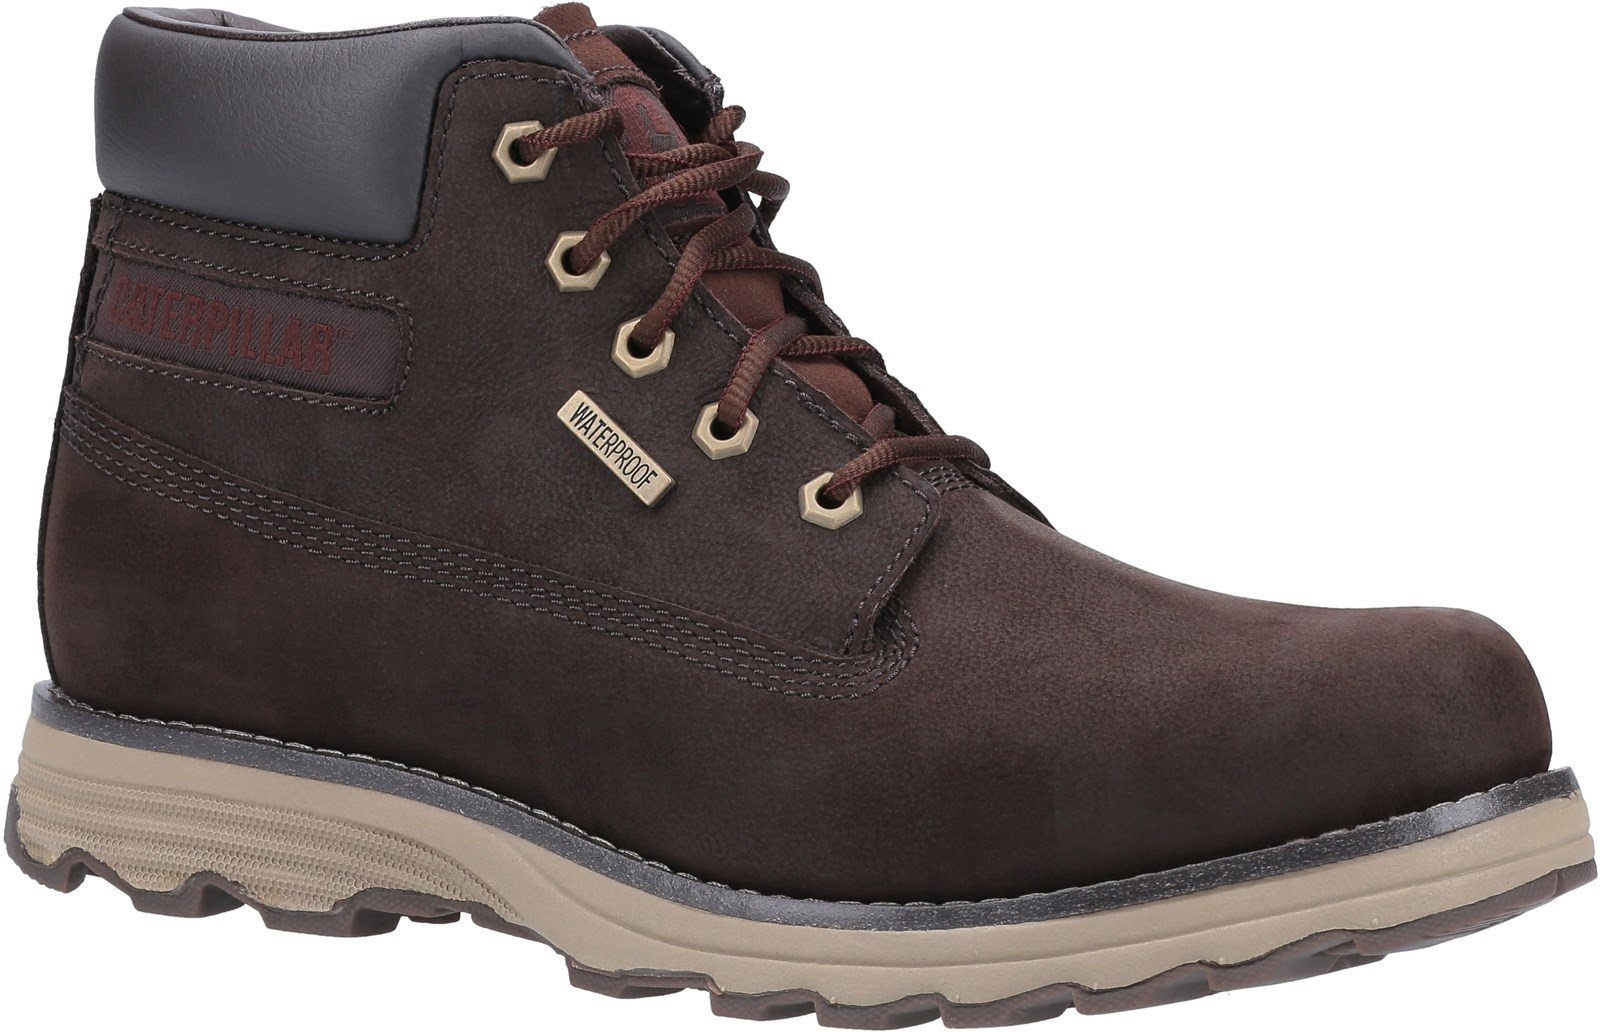 CAT Lifestyle Men's Founder WP TX Lace Up Boot Coffee Bean 31487 - Coffee Bean 7